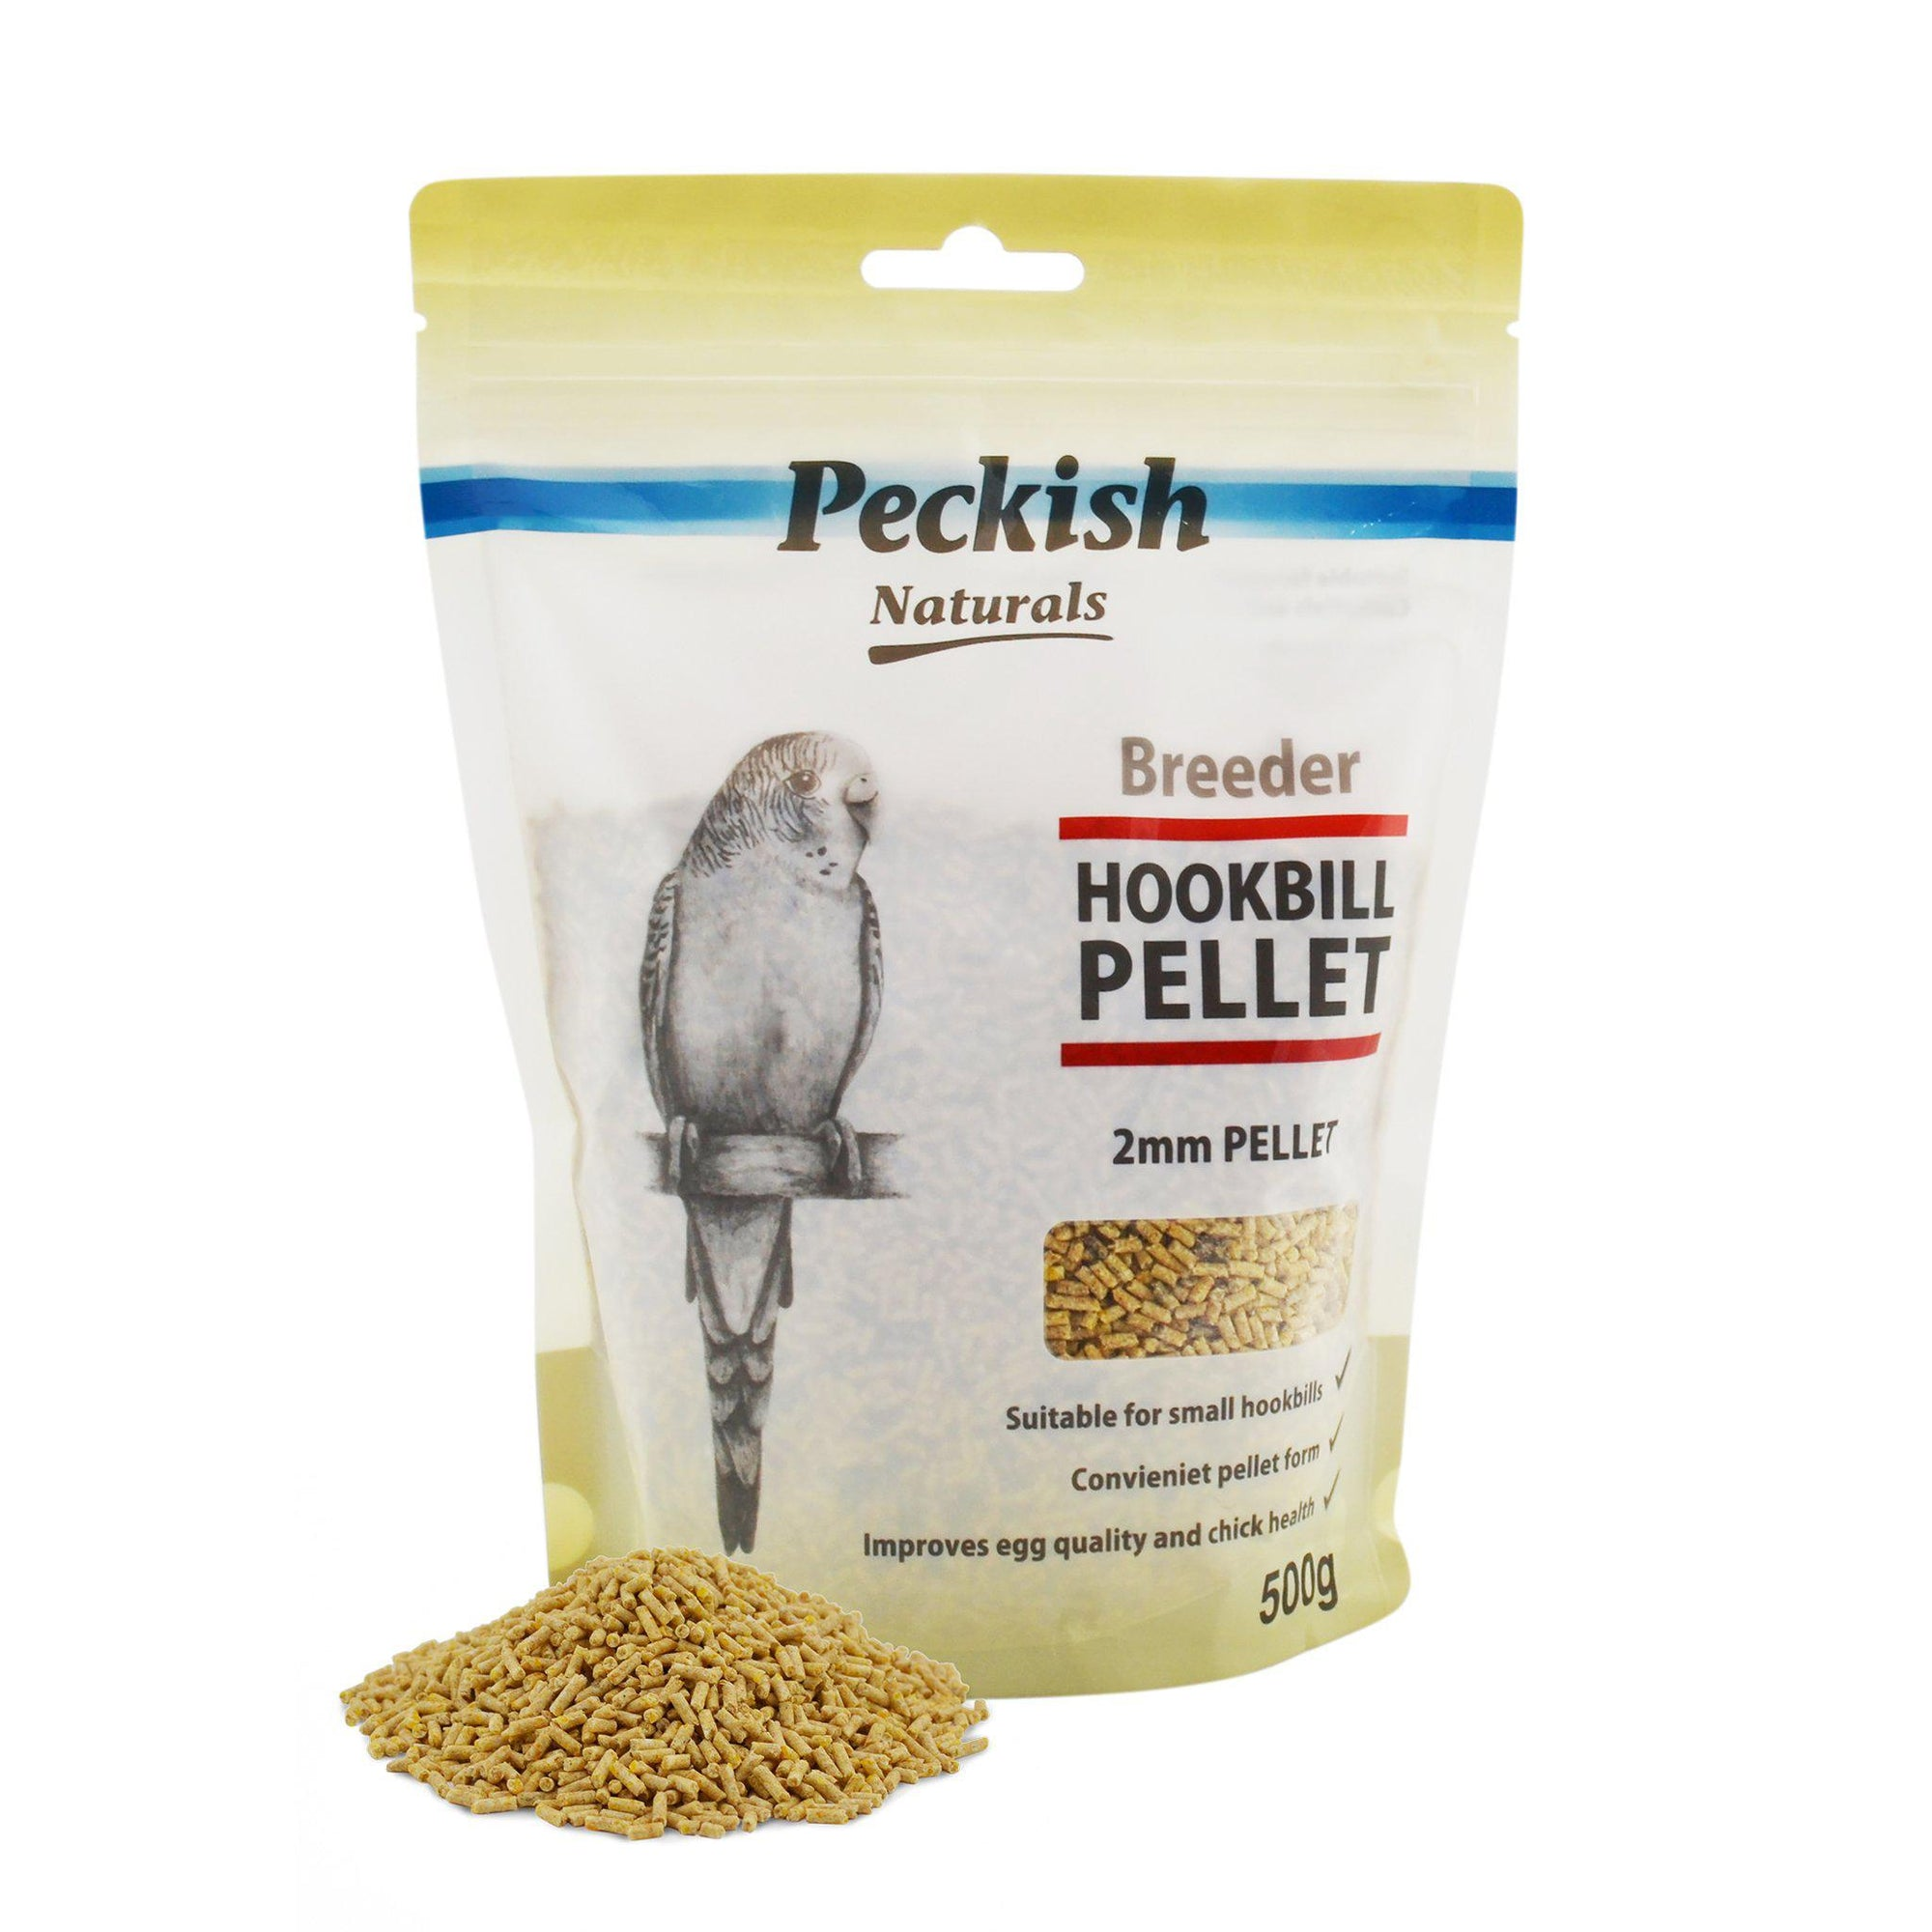 Peckish Naturals Breeder Hookbill 2mm Pellet - Small - ComfyPet Products